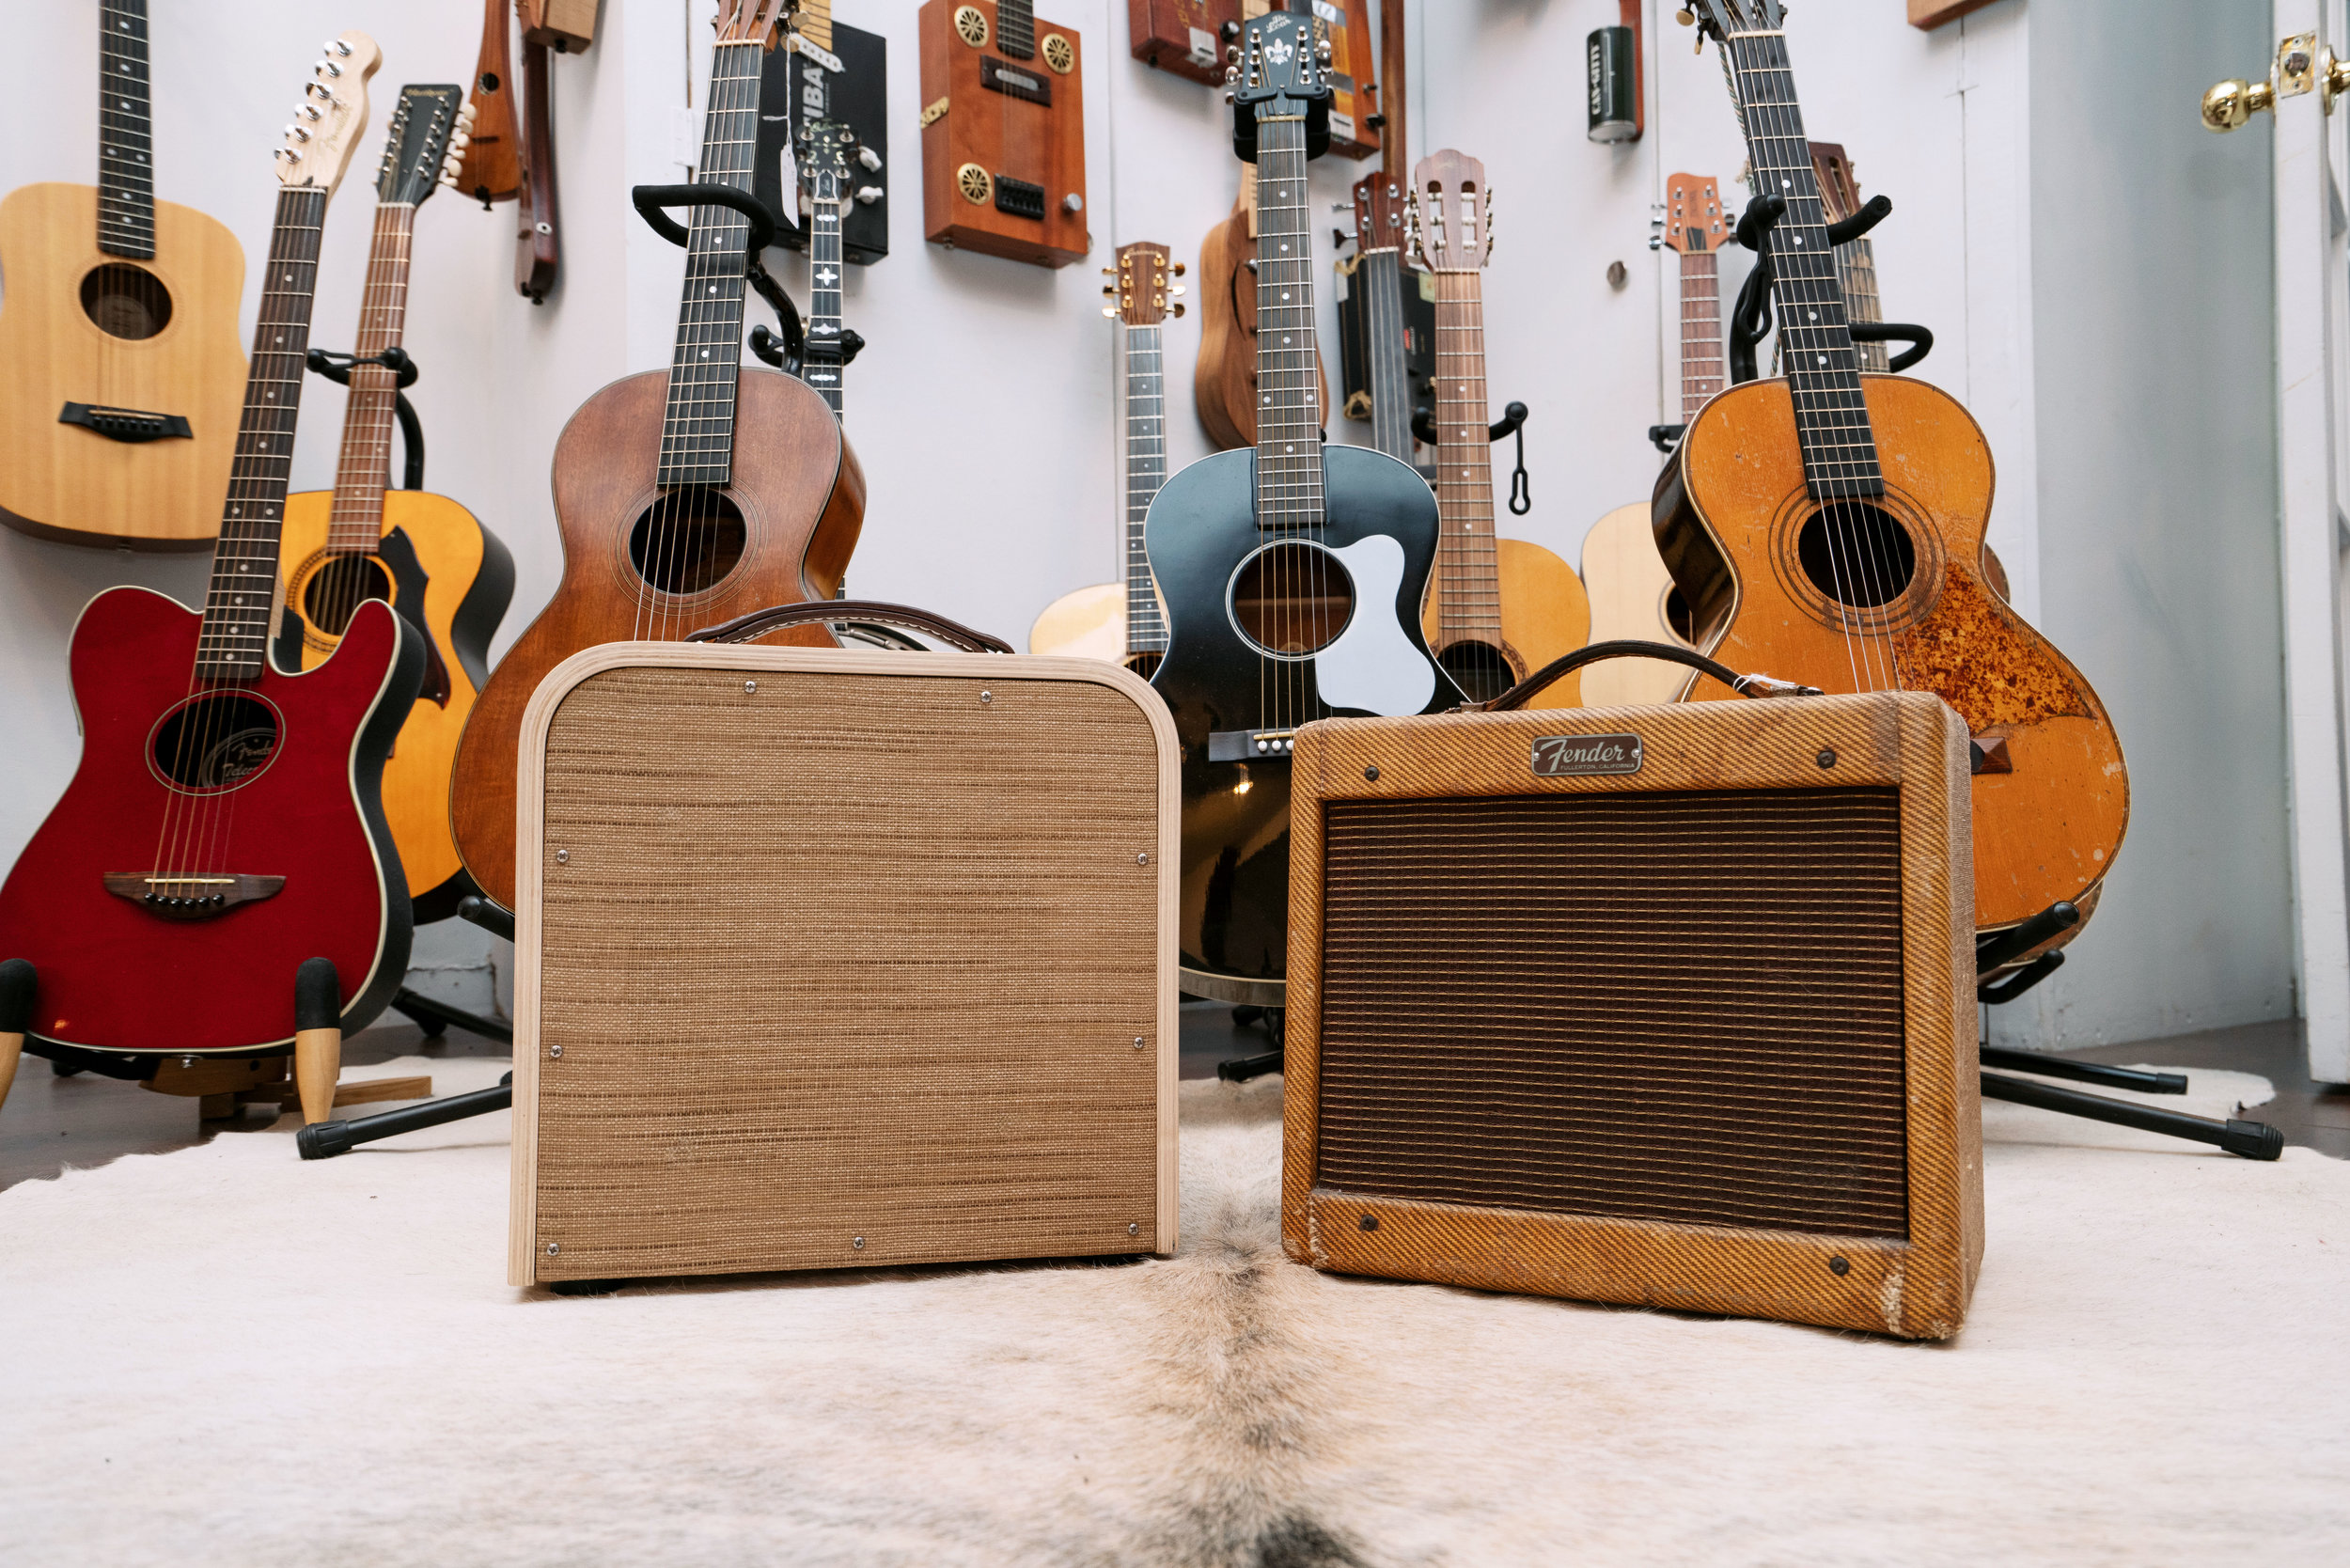 An original tweed Champ on the right. ( Vesper amp  on the left.)